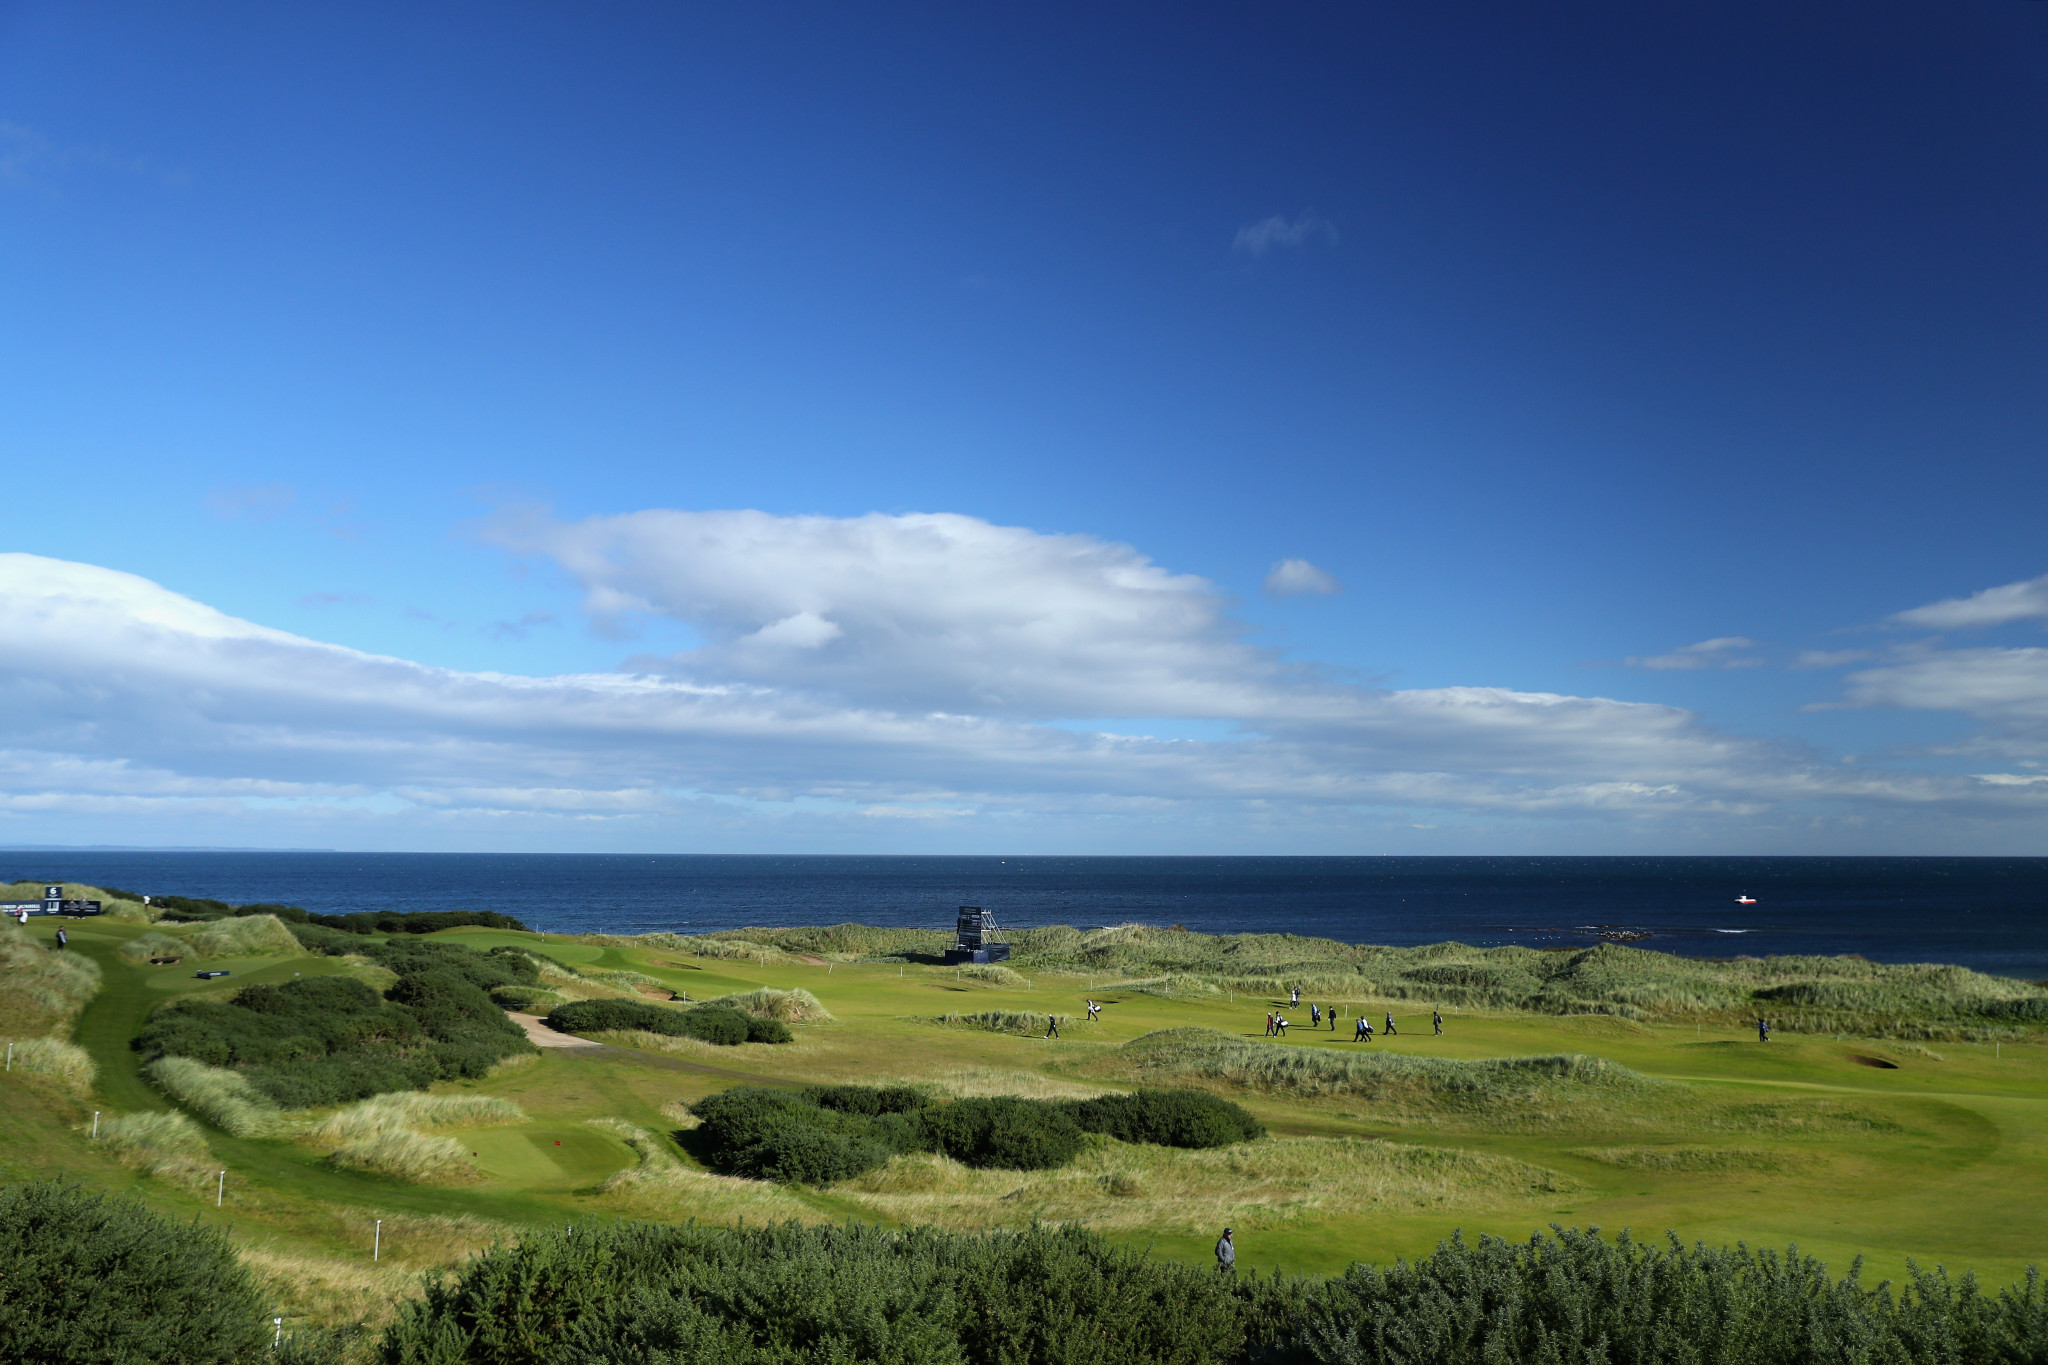 St Andrews to host historic 150th edition of The Open in 2021